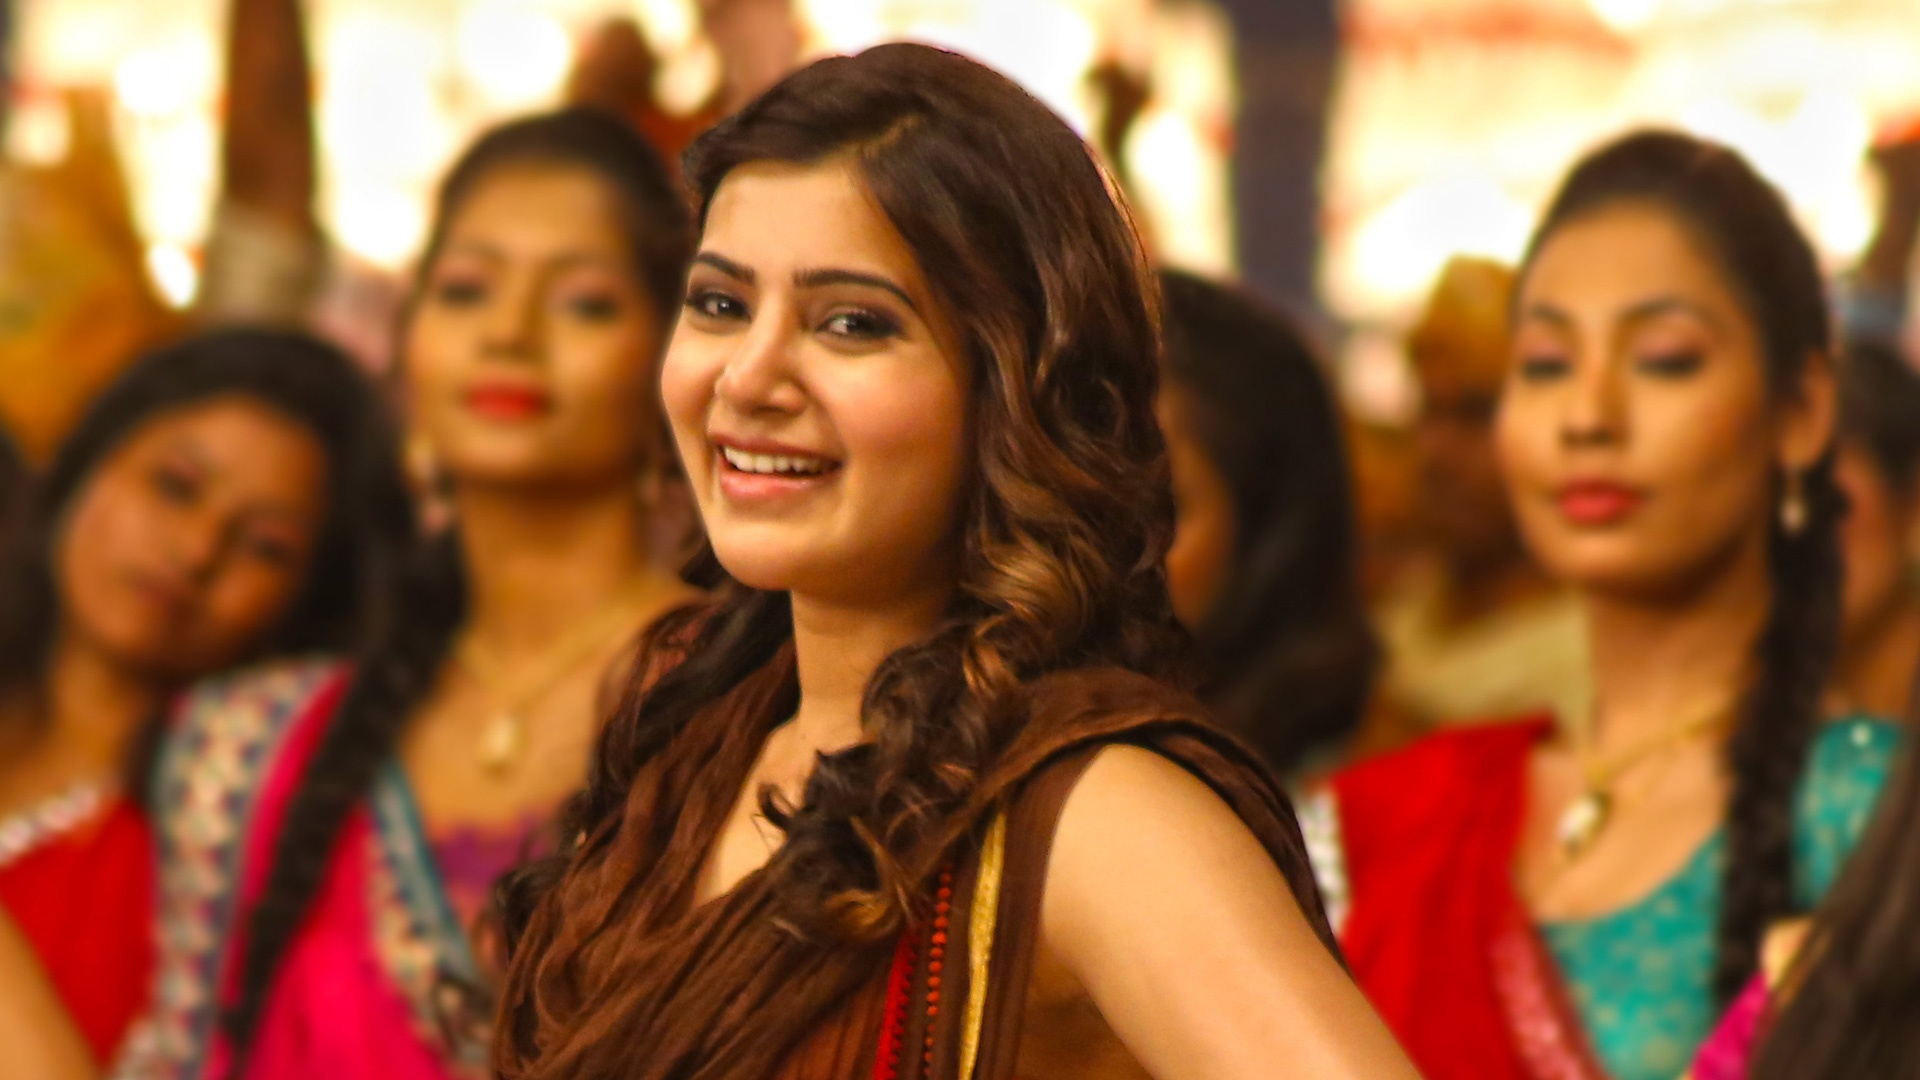 samantha kaththi wallpapers in jpg format for free download